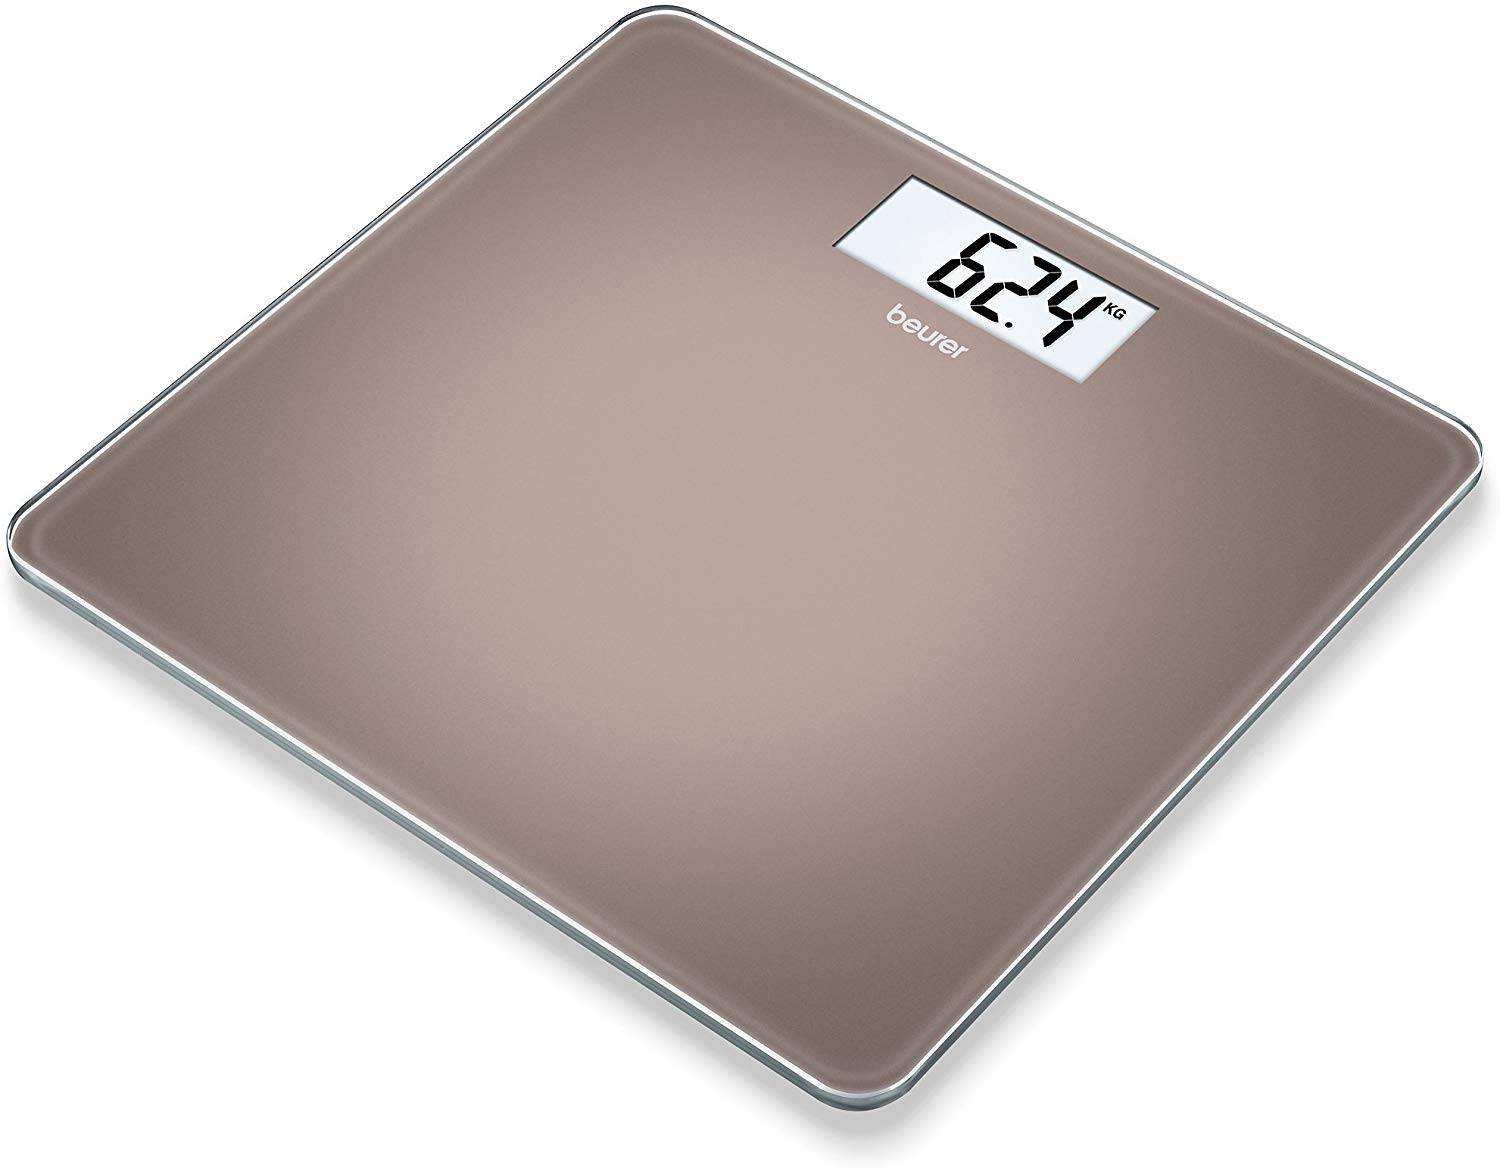 beurer-digital-glass-scale-toffee-gs-212-kuwait-online